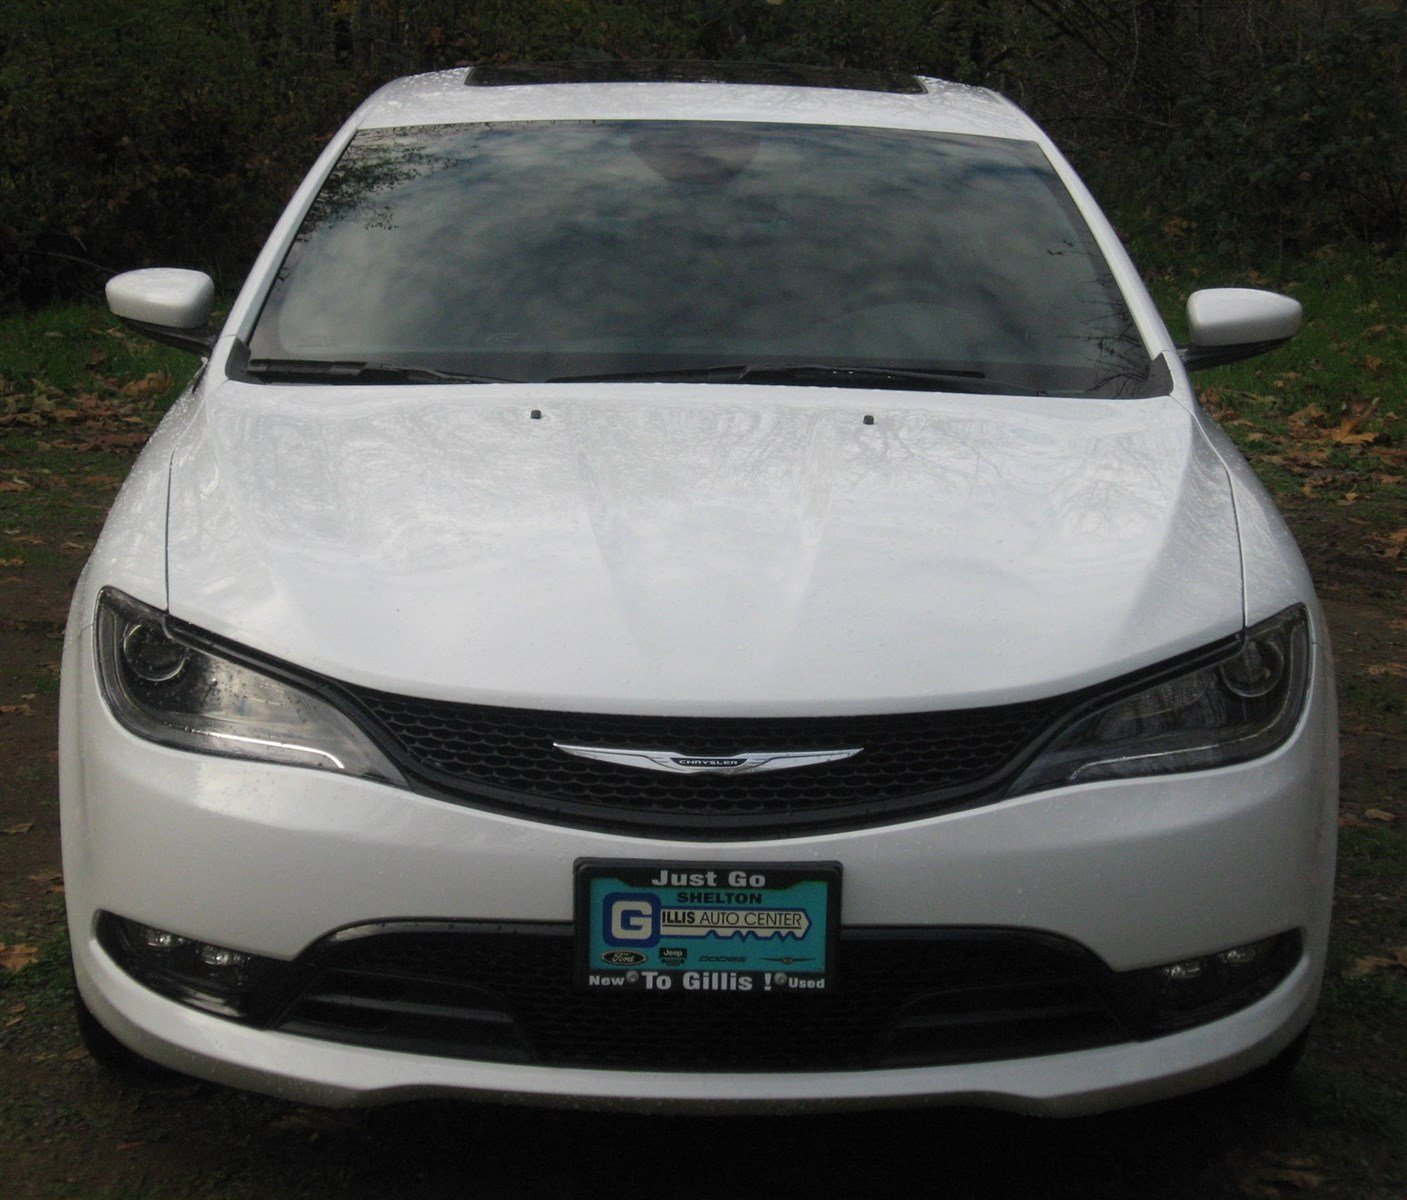 New 2016 Chrysler 200 4dr Sdn S FWD